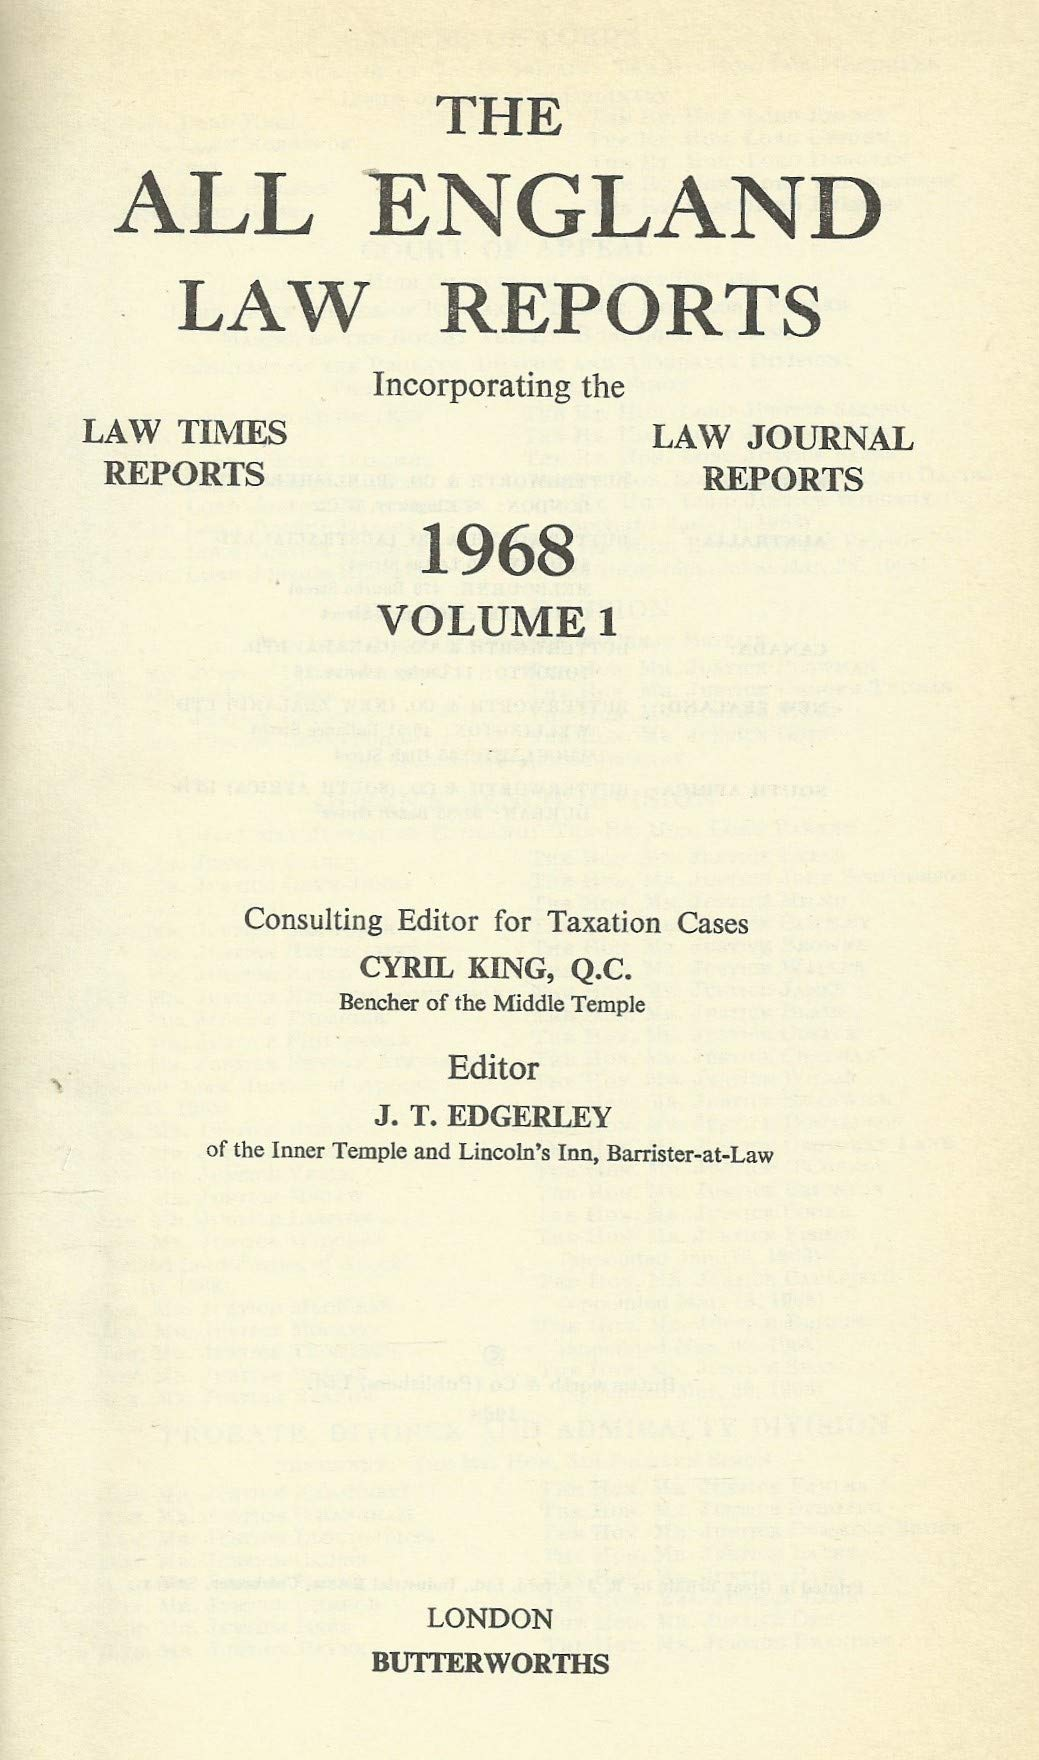 All england law reports: 1968 Vol 1